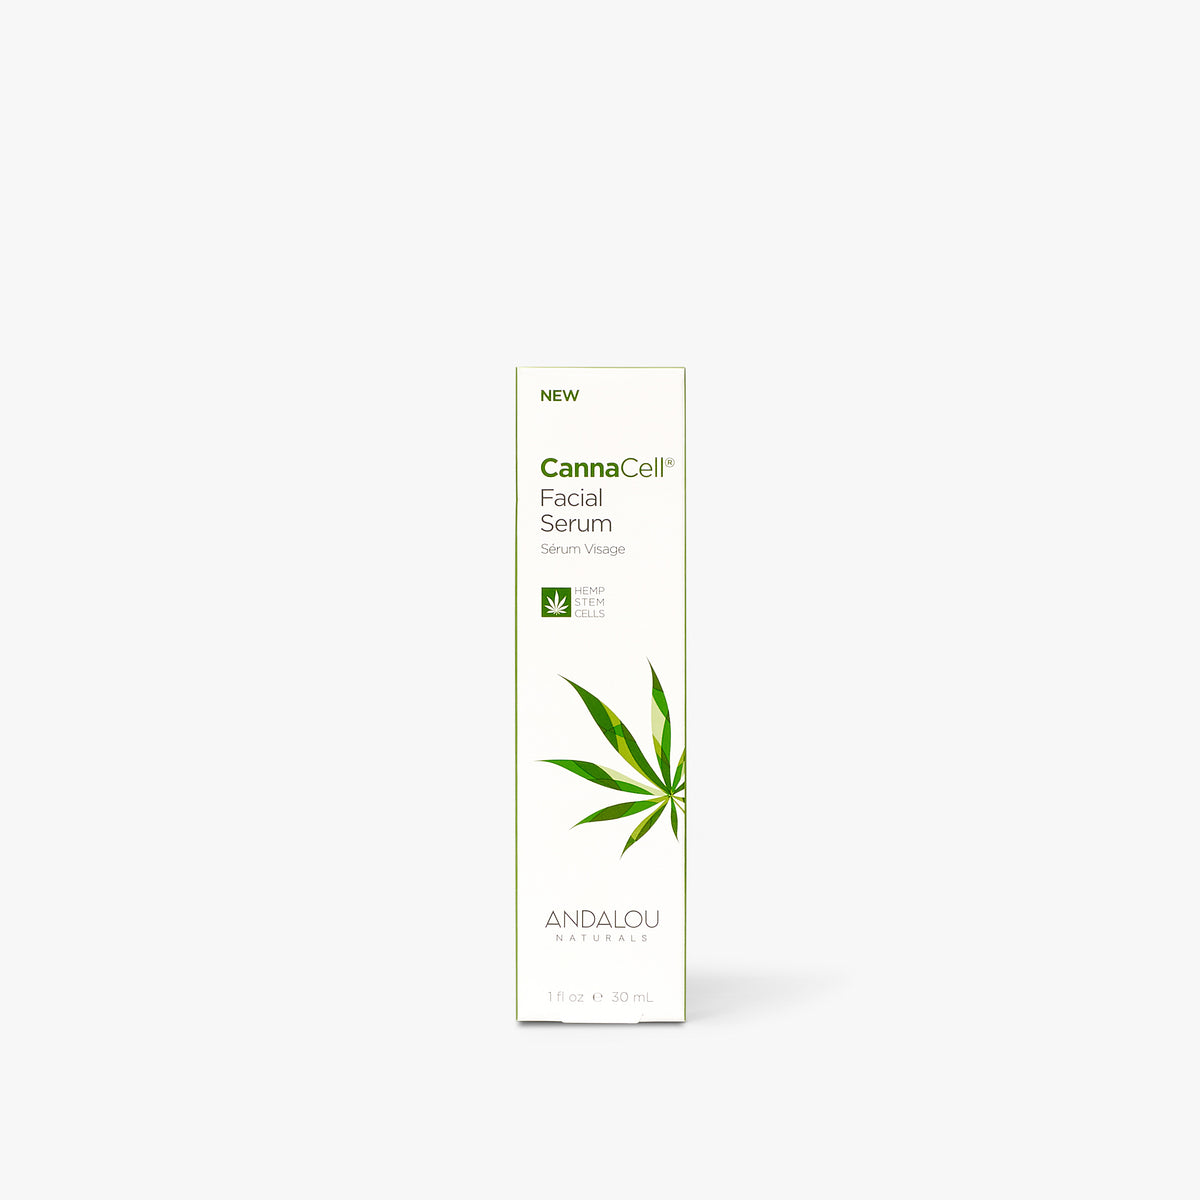 Andalou Naturals CannaCell Facial Serum box